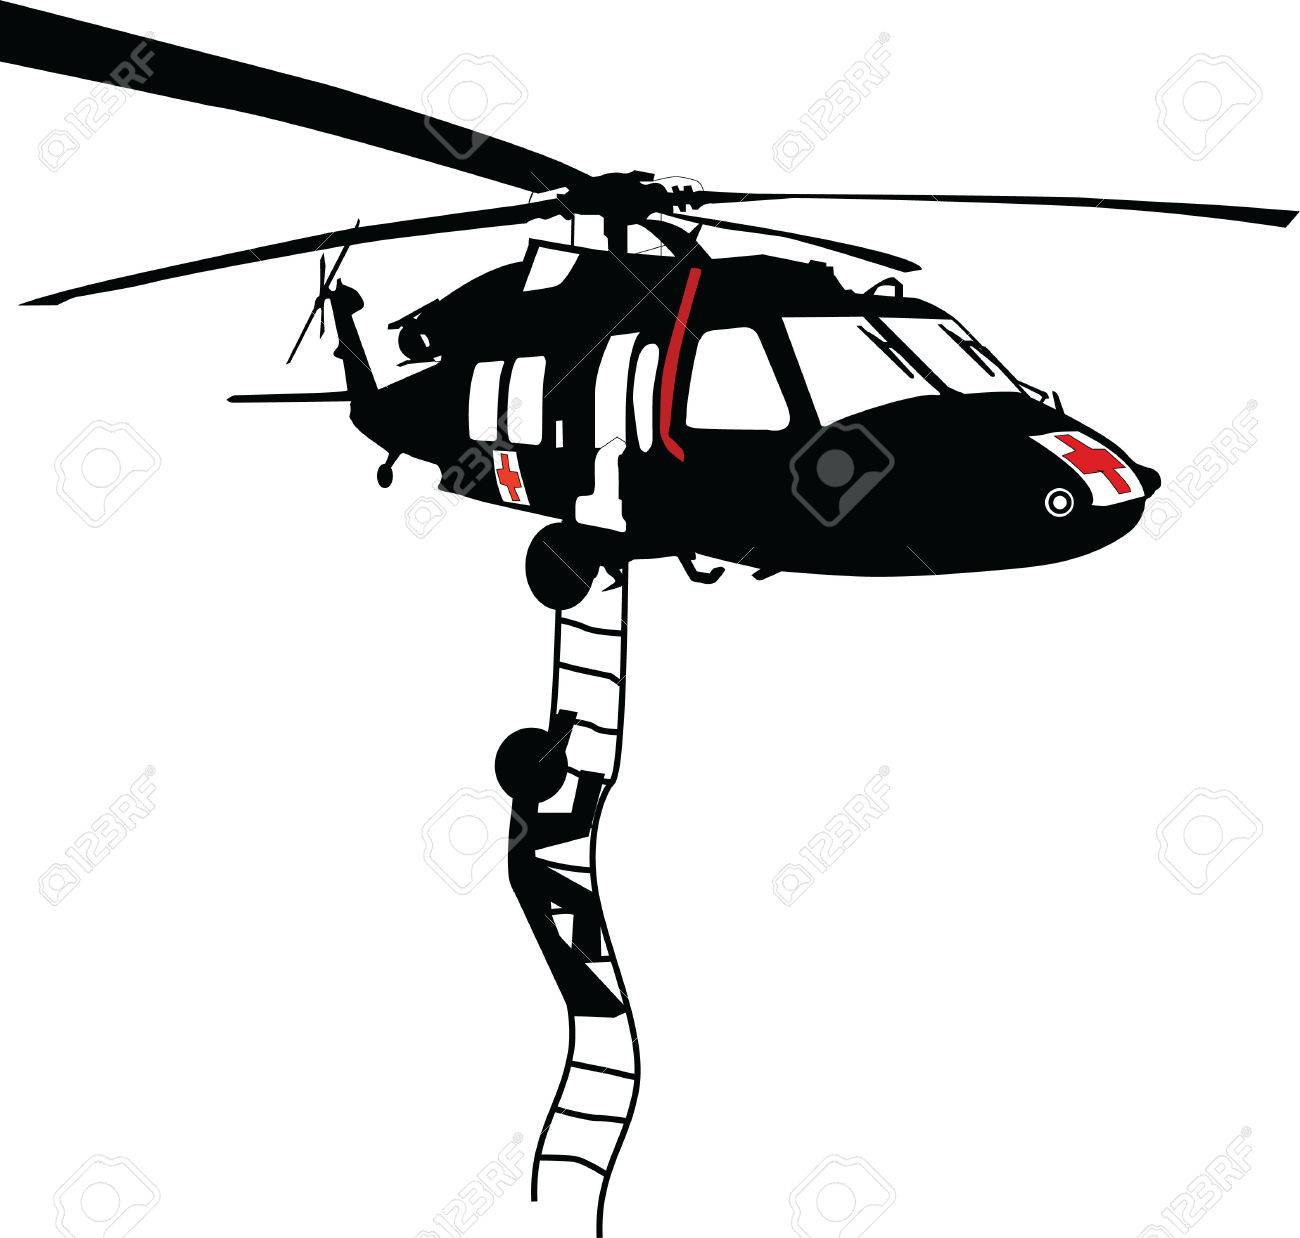 29,096 Helicopter Cliparts, Stock Vector And Royalty Free ... for Helicopter Clipart Black And White  26bof